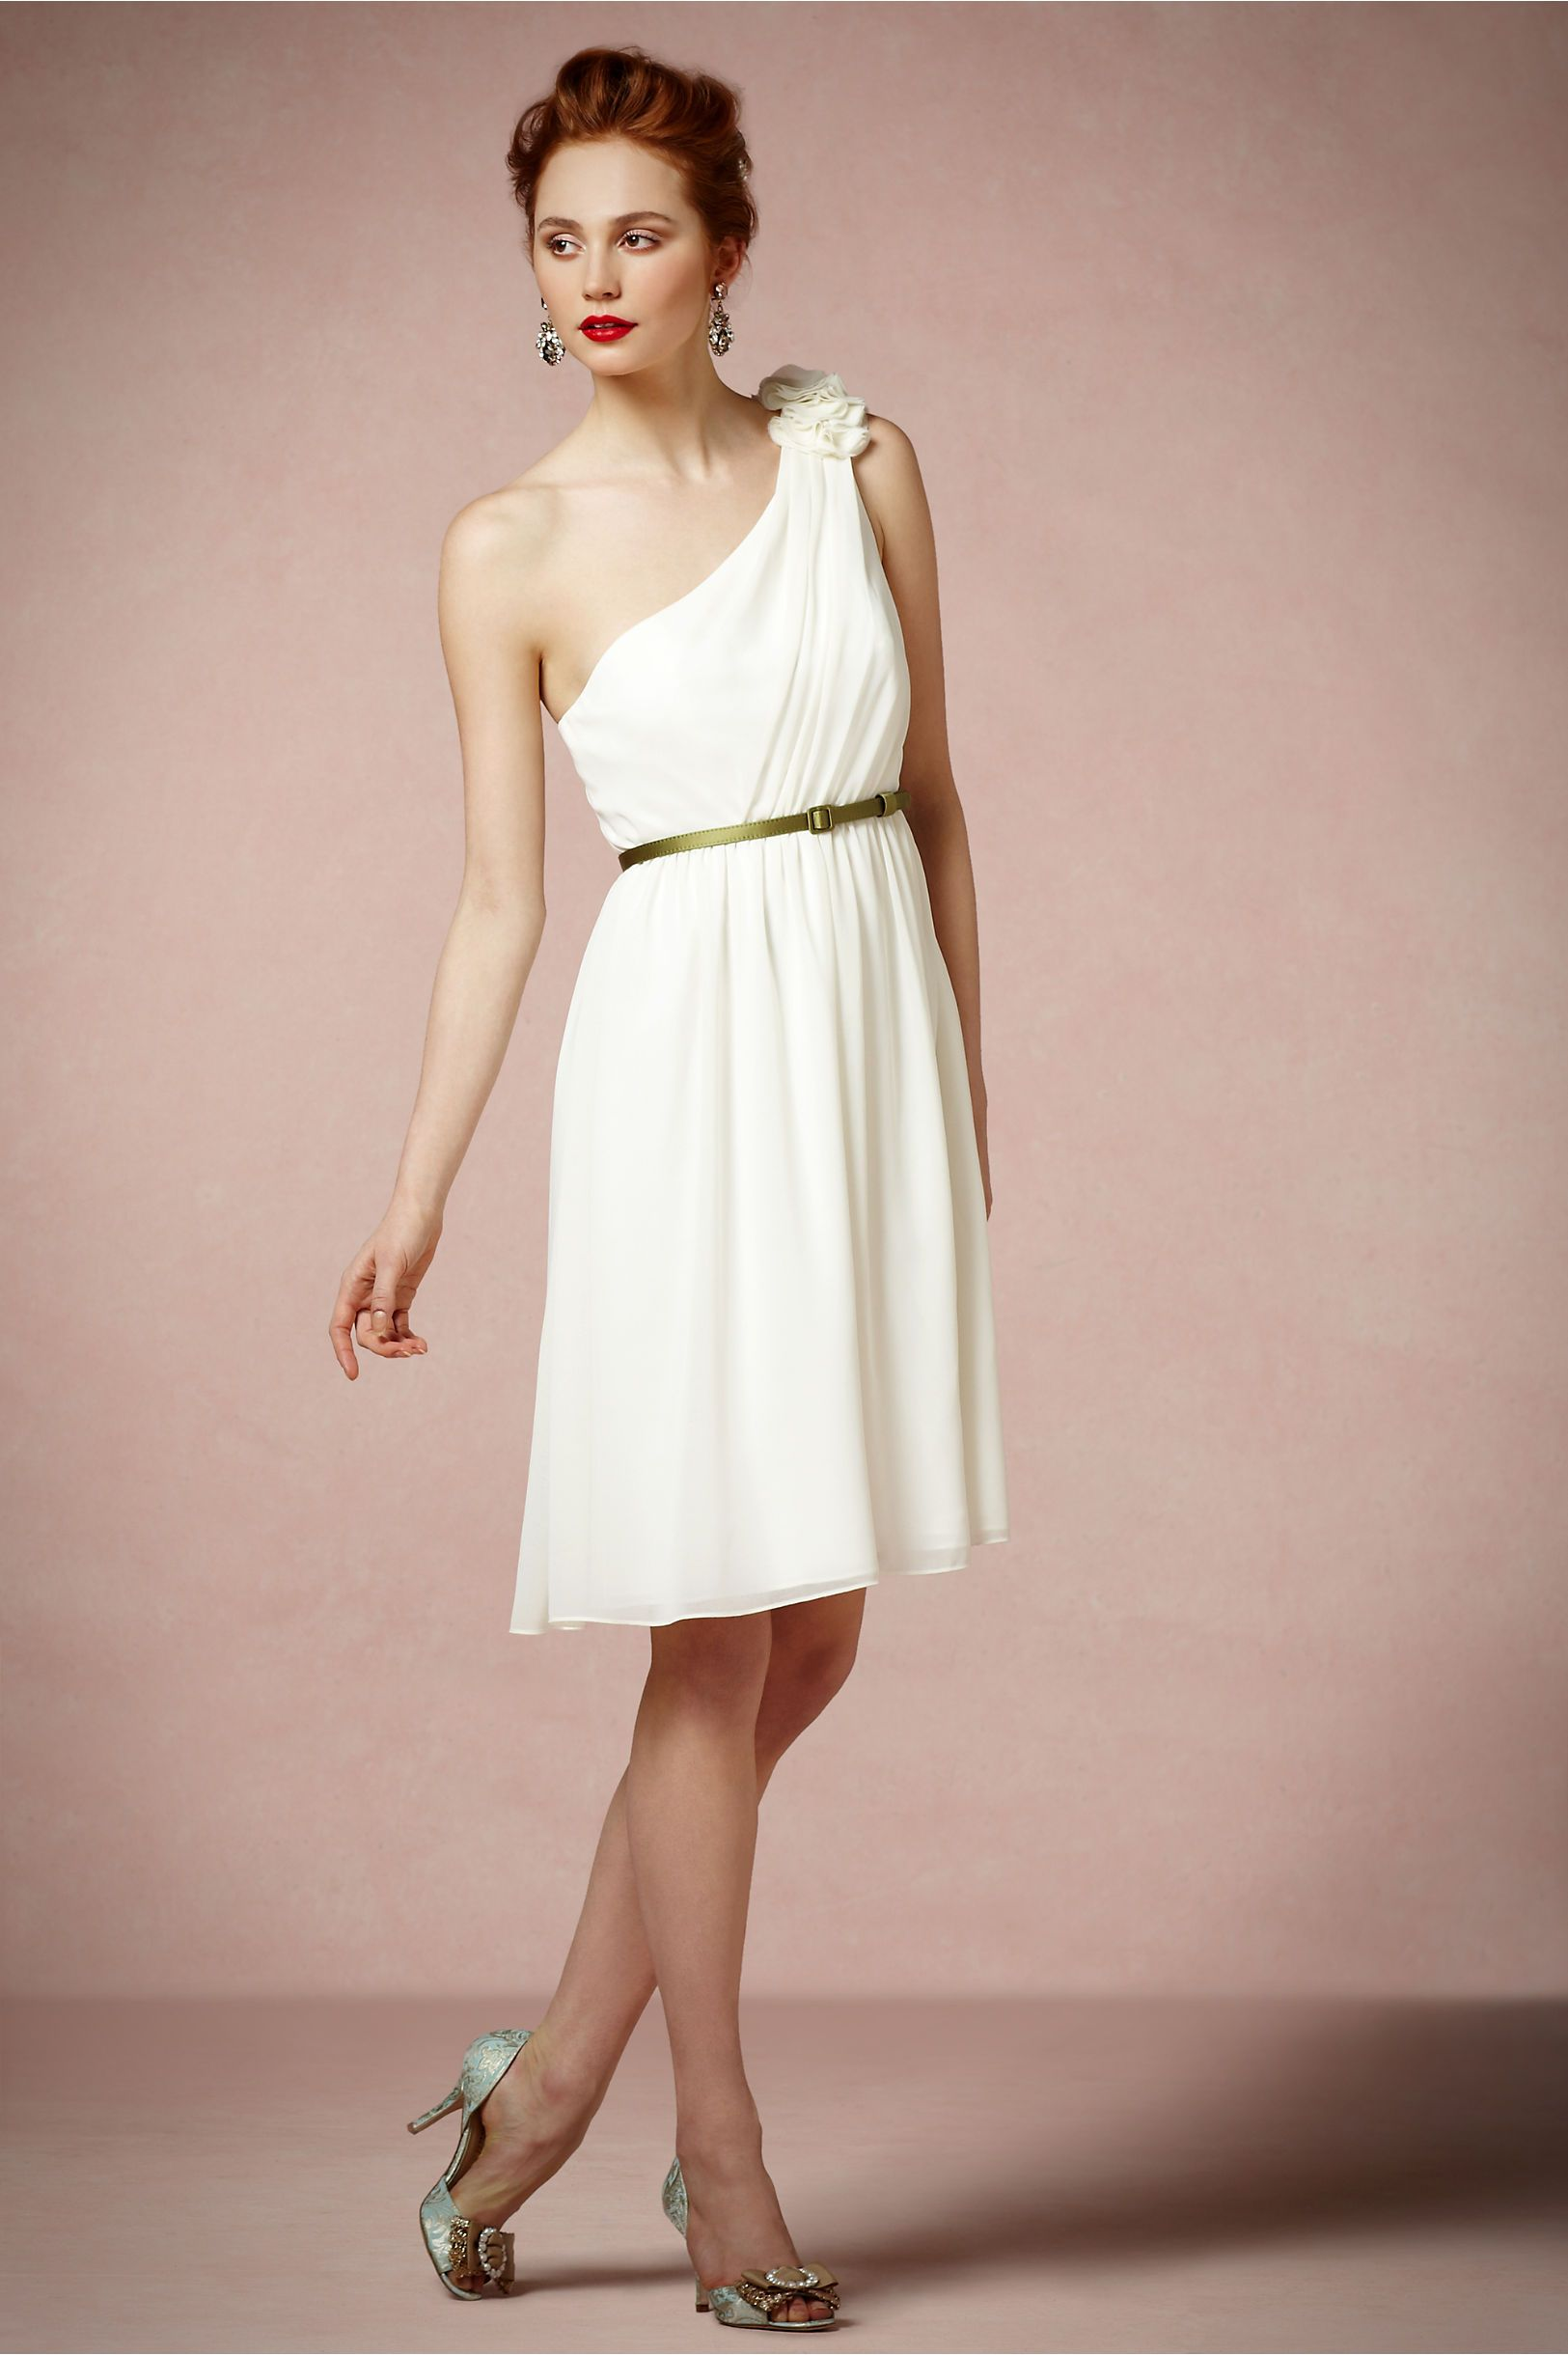 Nine Muses Dress in Sale Dresses at BHLDN | Marriage, life, love ...